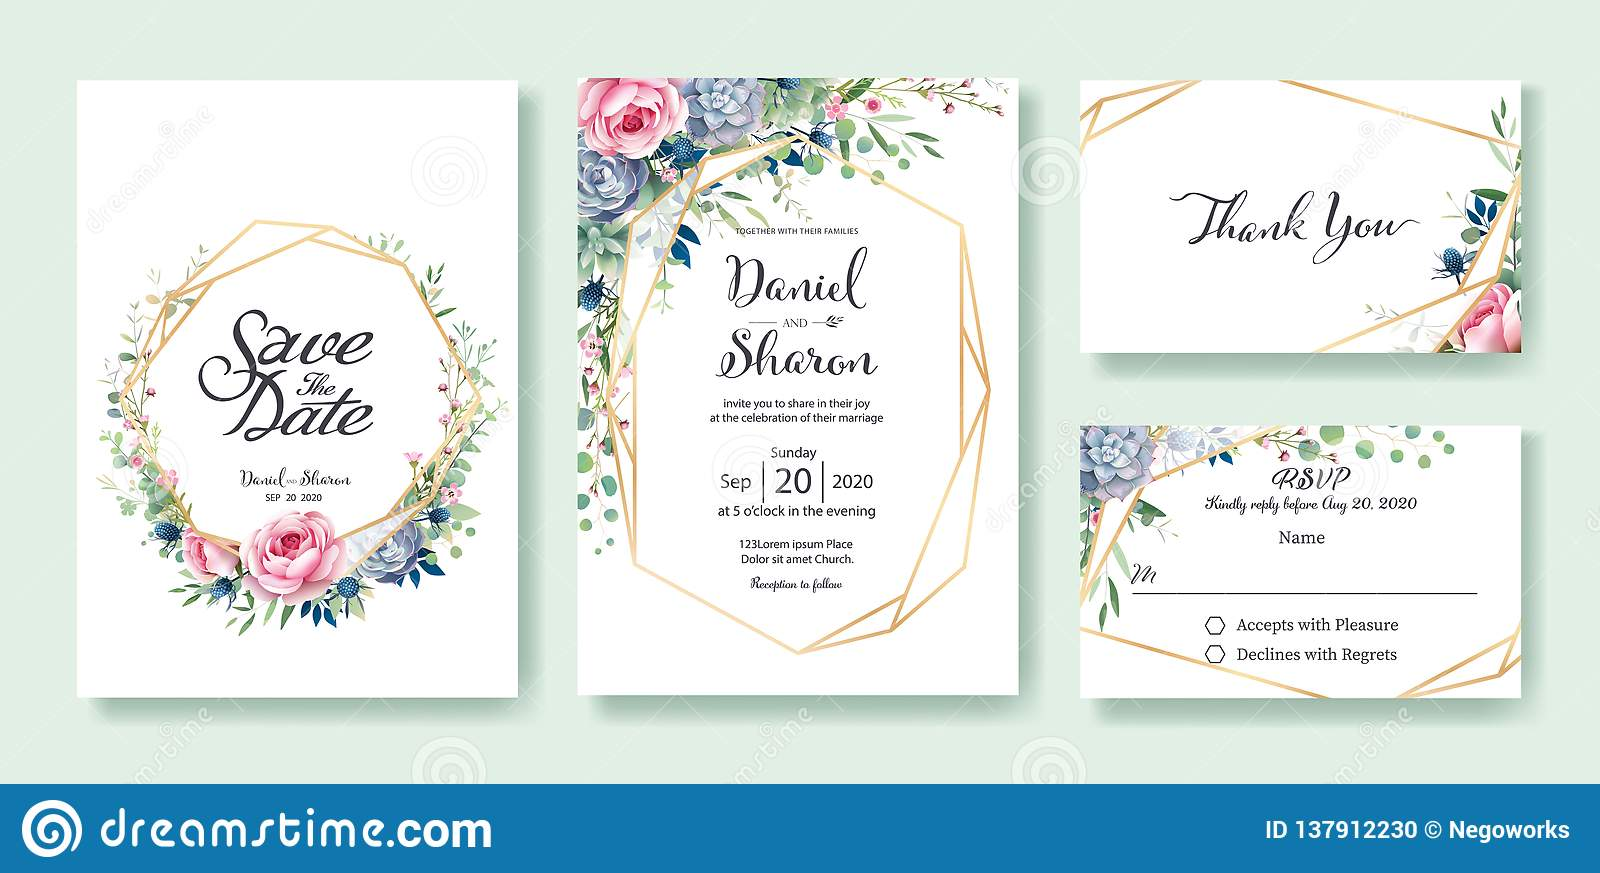 Wedding Invitation Template.Wedding Invitation Save The Date Thank You Rsvp Card Design